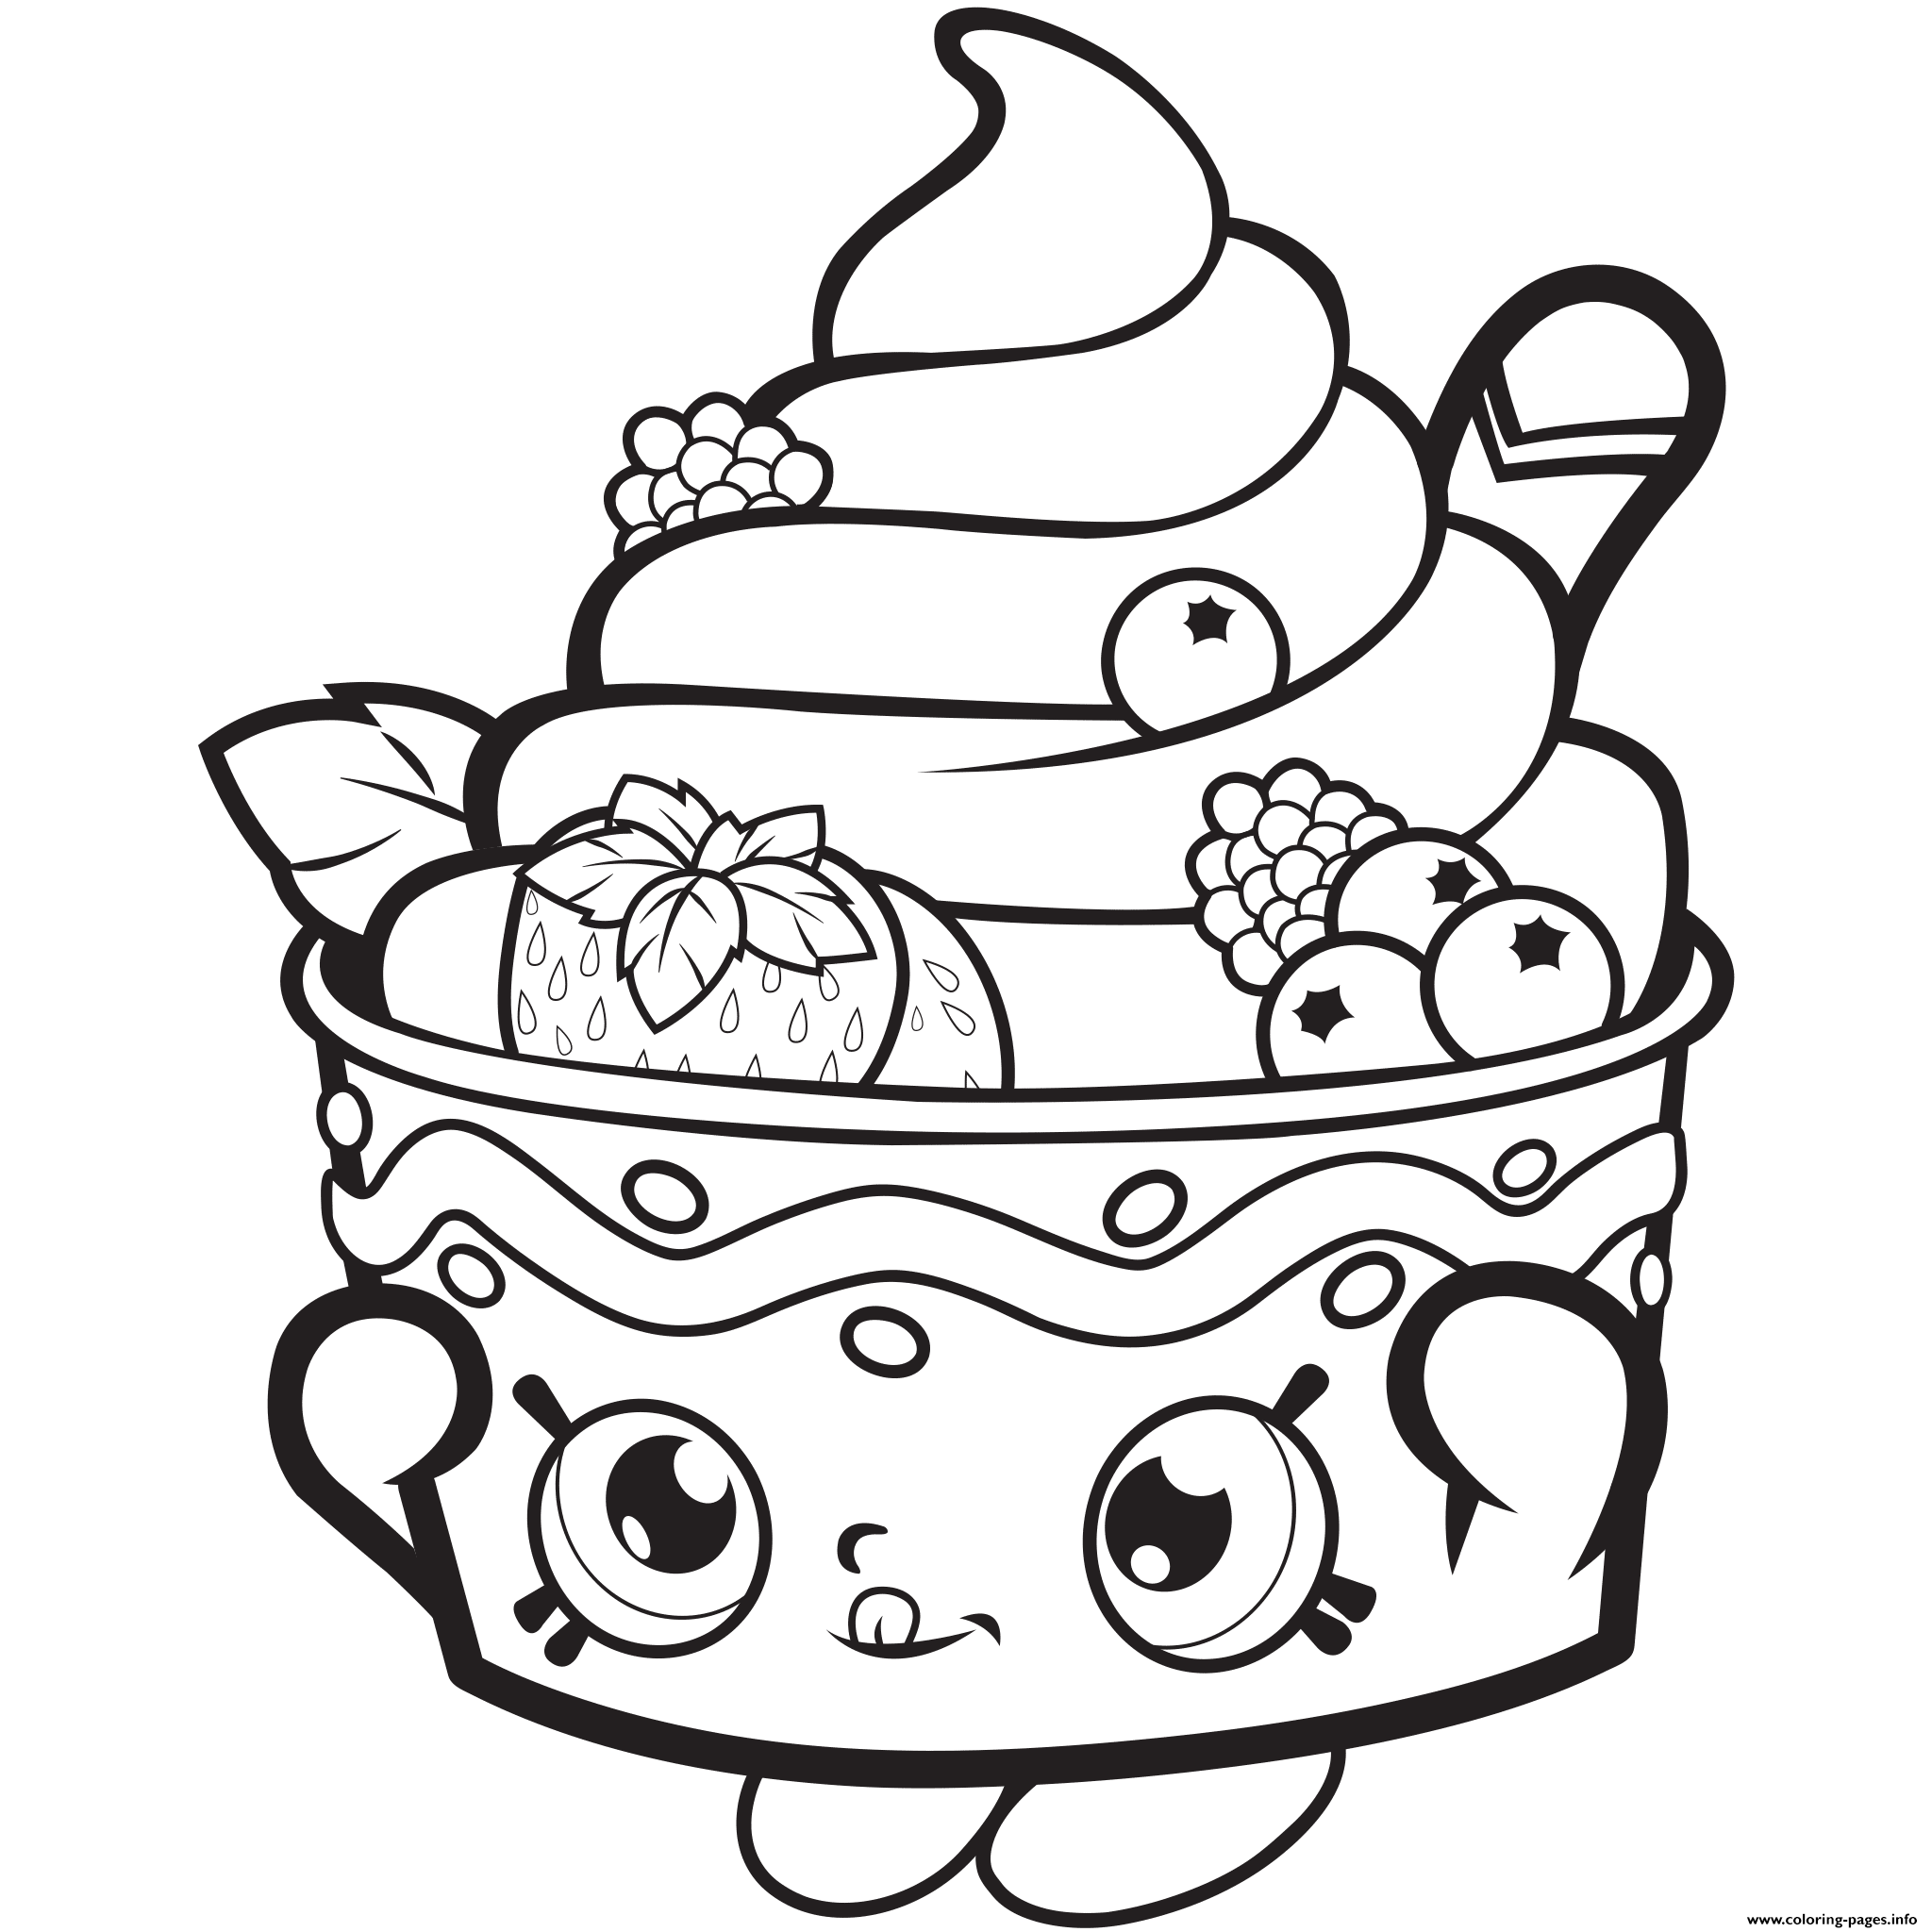 Shopkins coloring pages season 5 shopkins awesome printable coloring - Frozen Yo Chi Printable Shopkins Season 1 Season One Coloring Pages Print Download